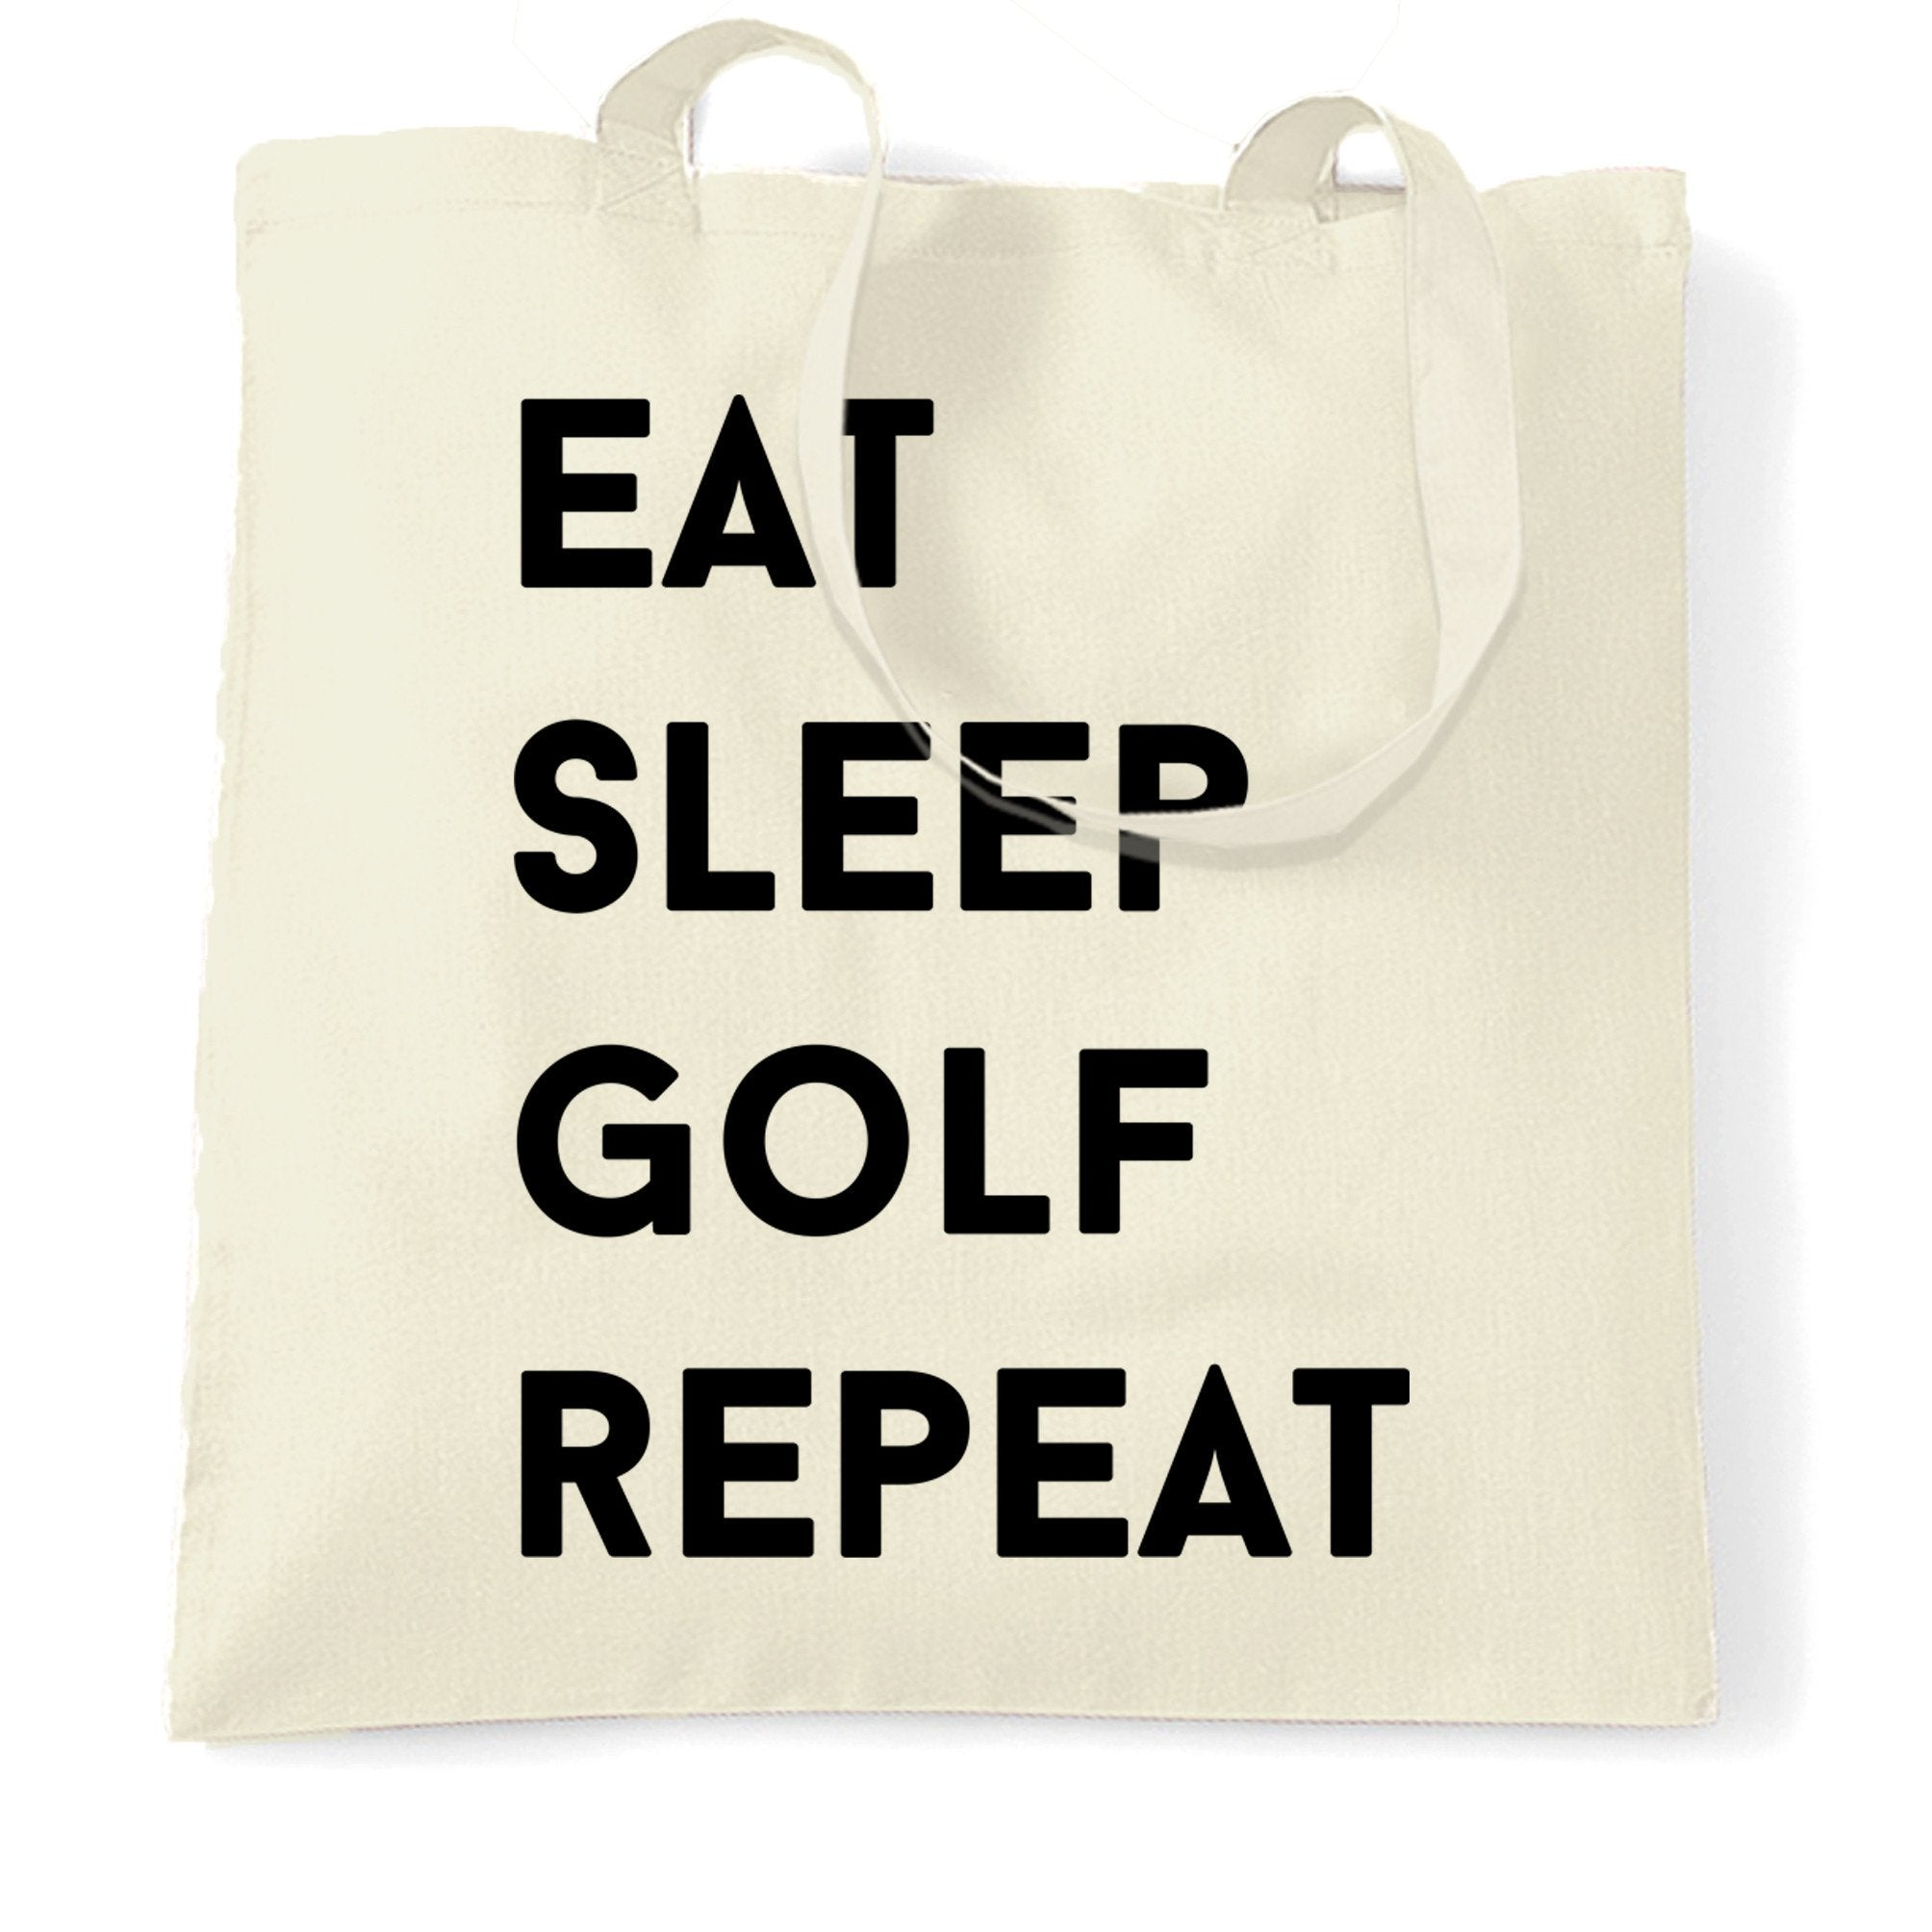 Sports Tote Bag Eat, Sleep, Golf, Repeat Slogan